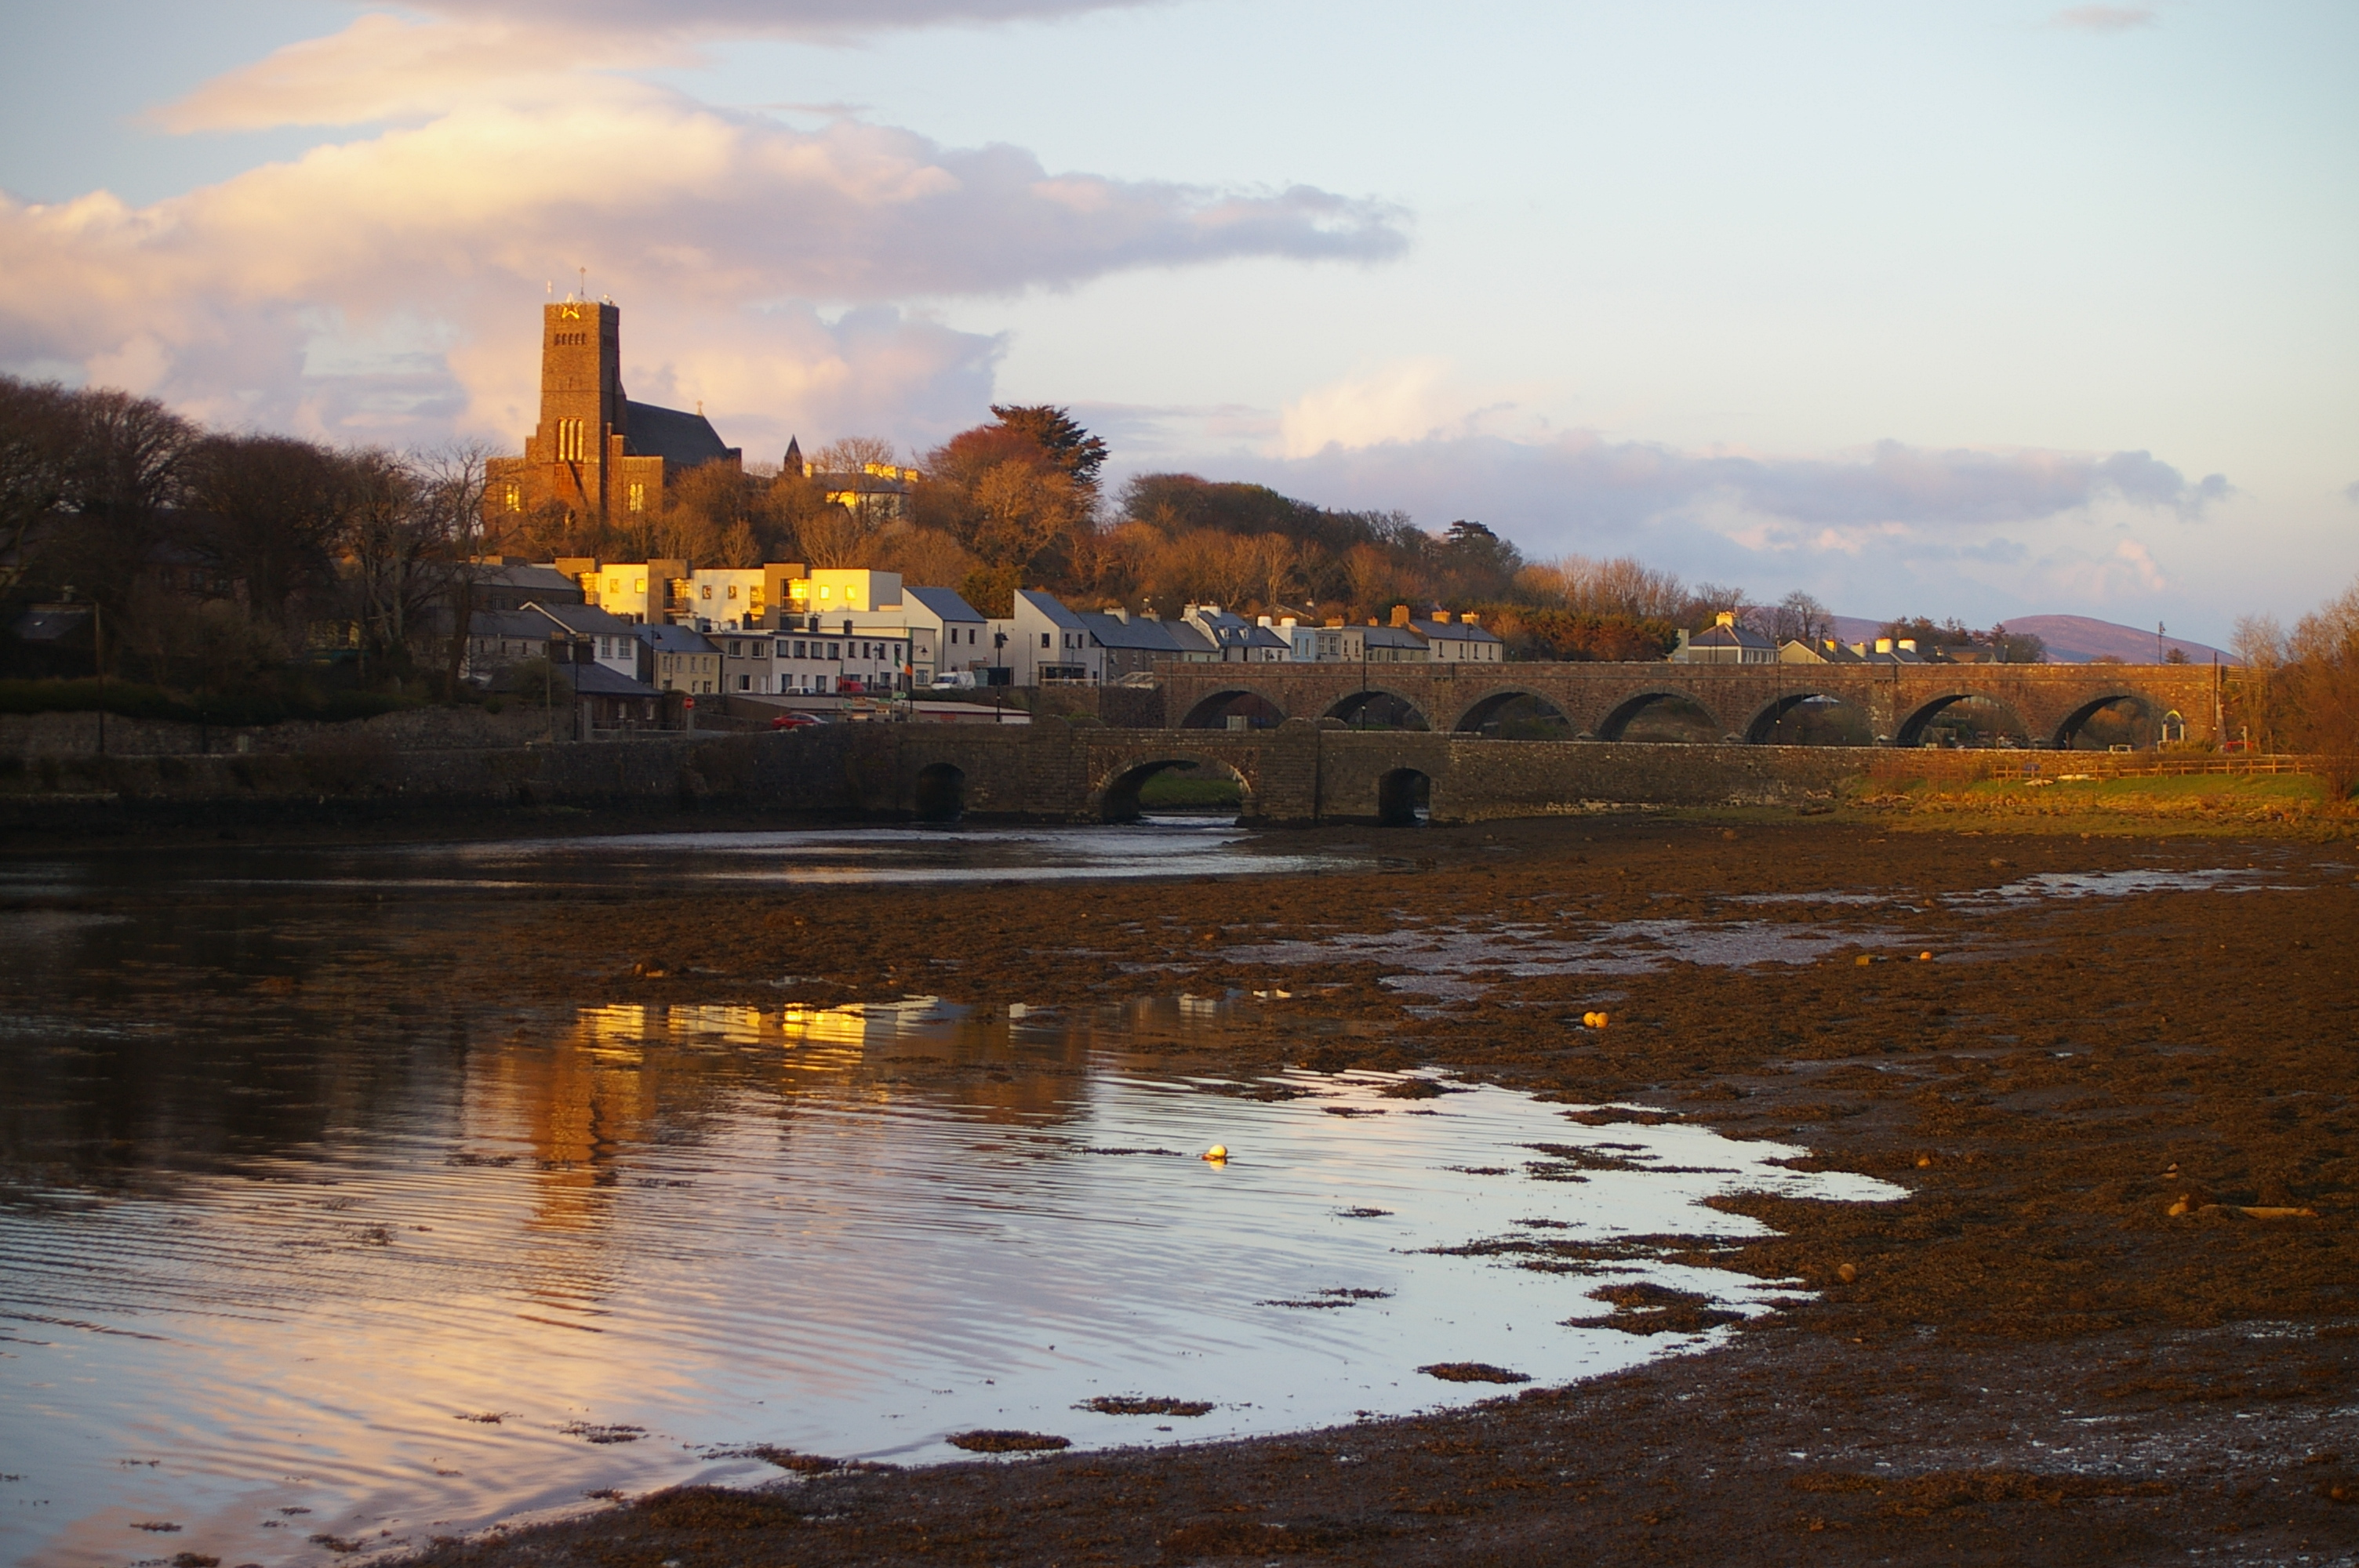 The waterways surrounding the town of Newport. Photo courtesy of australliantraveller.net